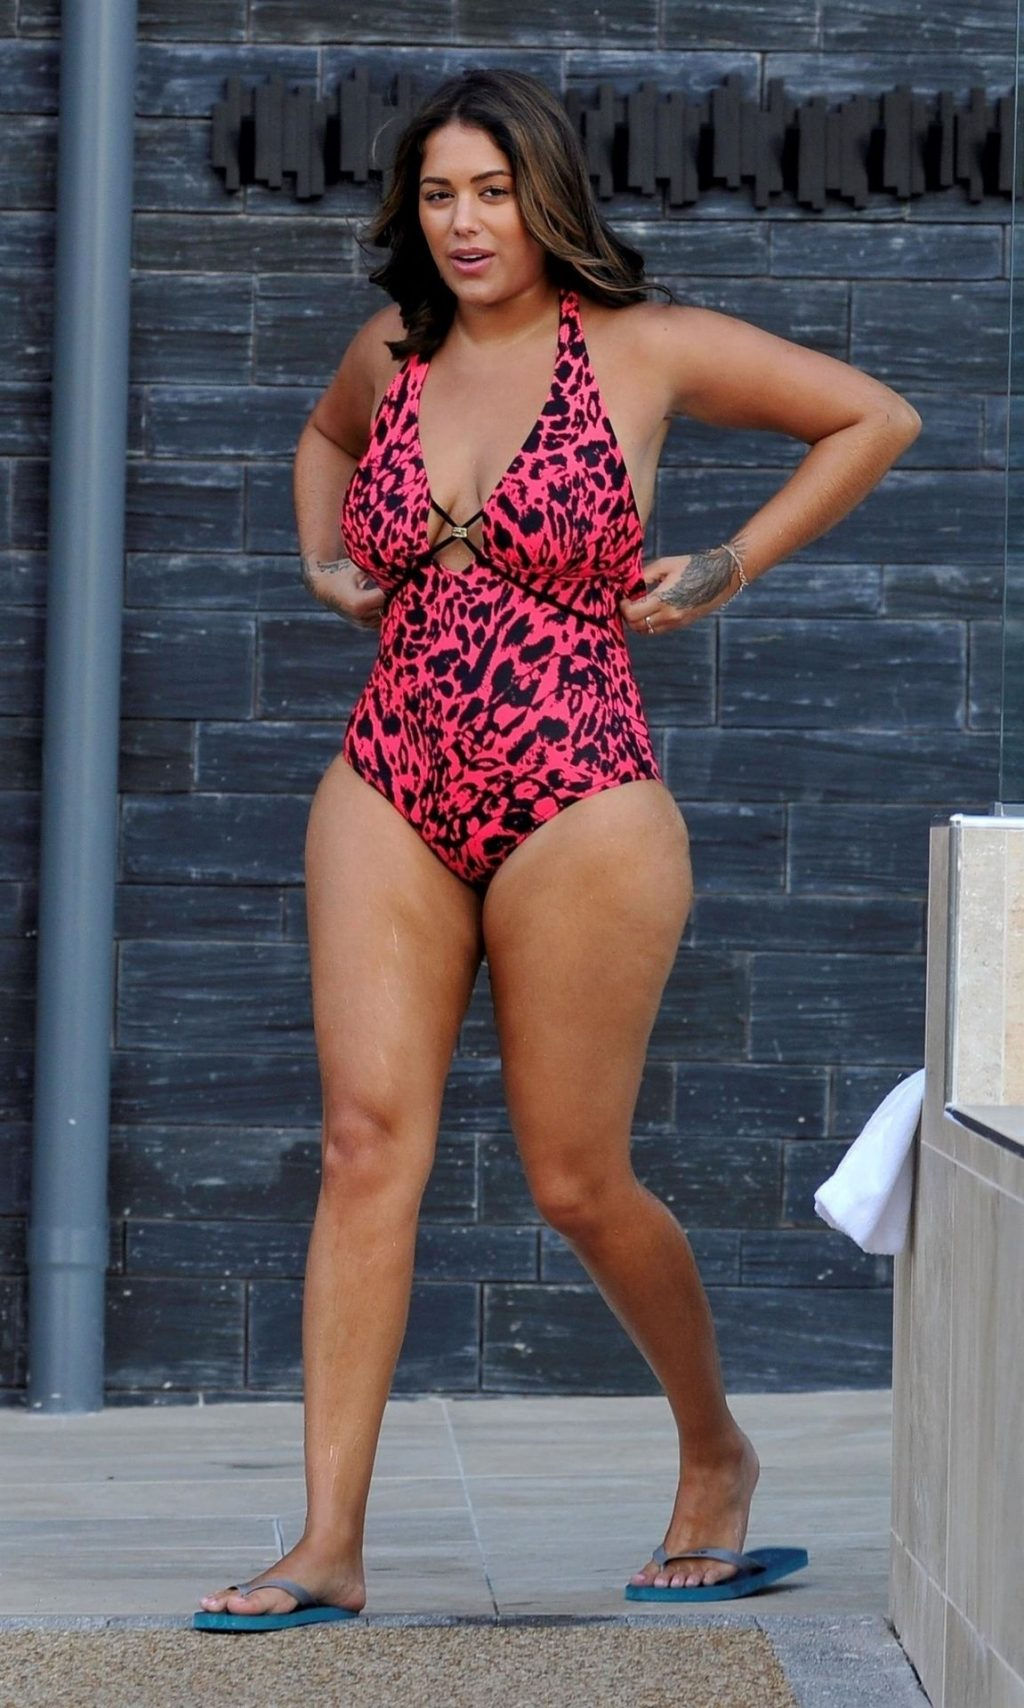 Malin Andersson Shows Off Her Lucious Curves in Chester (25 Photos)